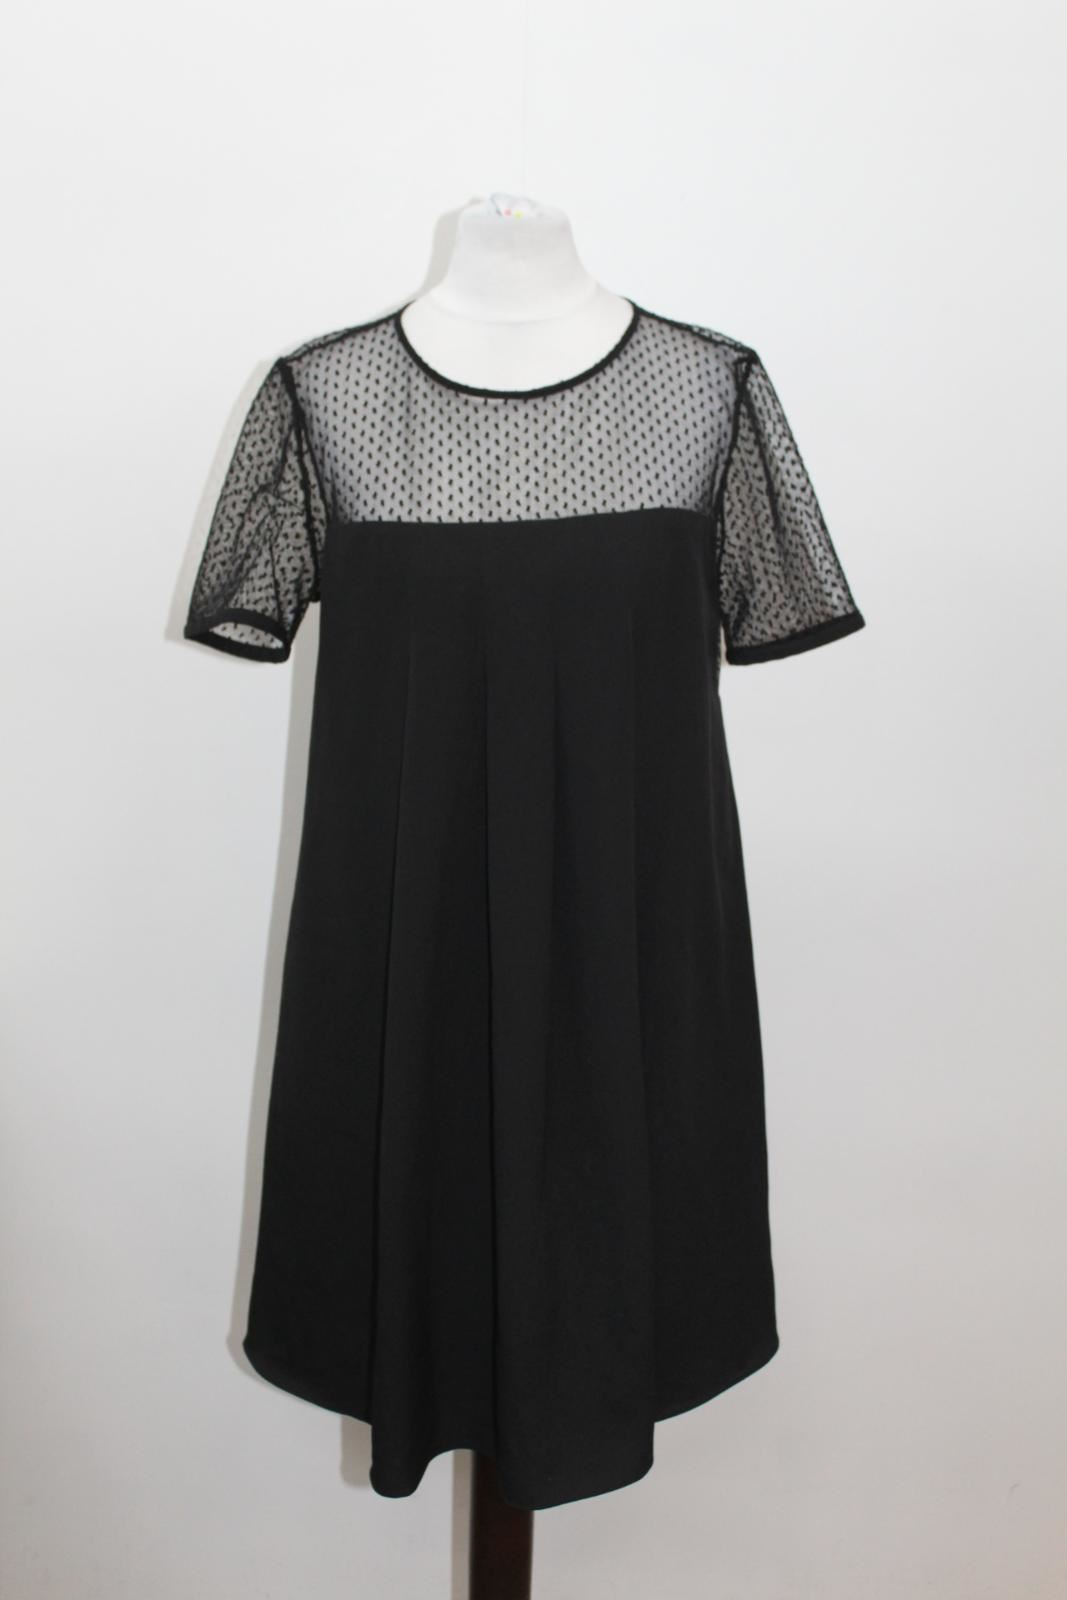 Size Eu36 Pierlot Uk8 Ladies Spotted Short Black Mesh Claudie Dress Sleeve z8dwvxvq